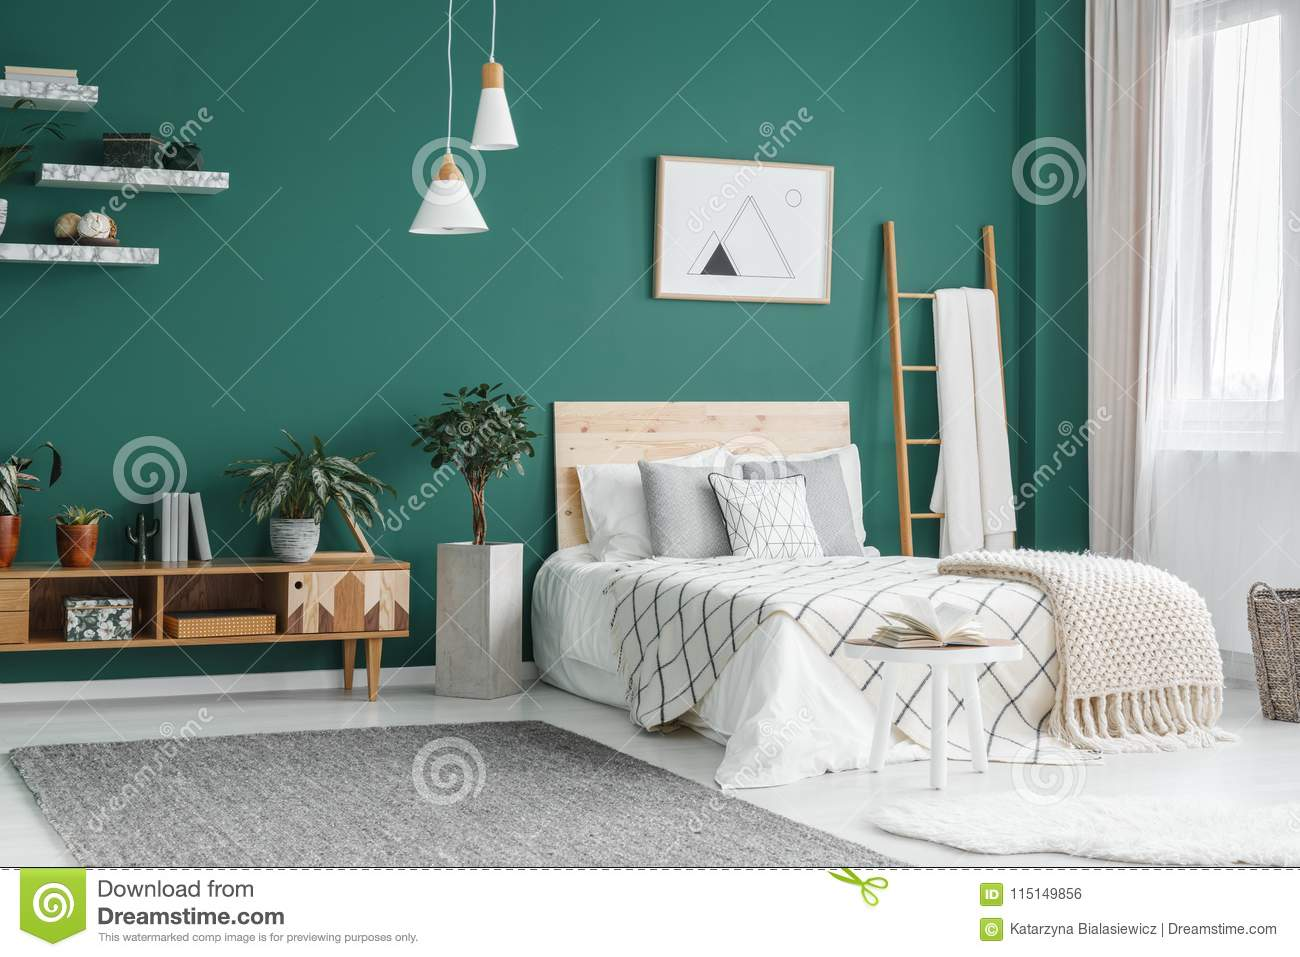 Boho Bedroom Green Boho Bedroom Interior Stock Photo Image Of Carpet Green